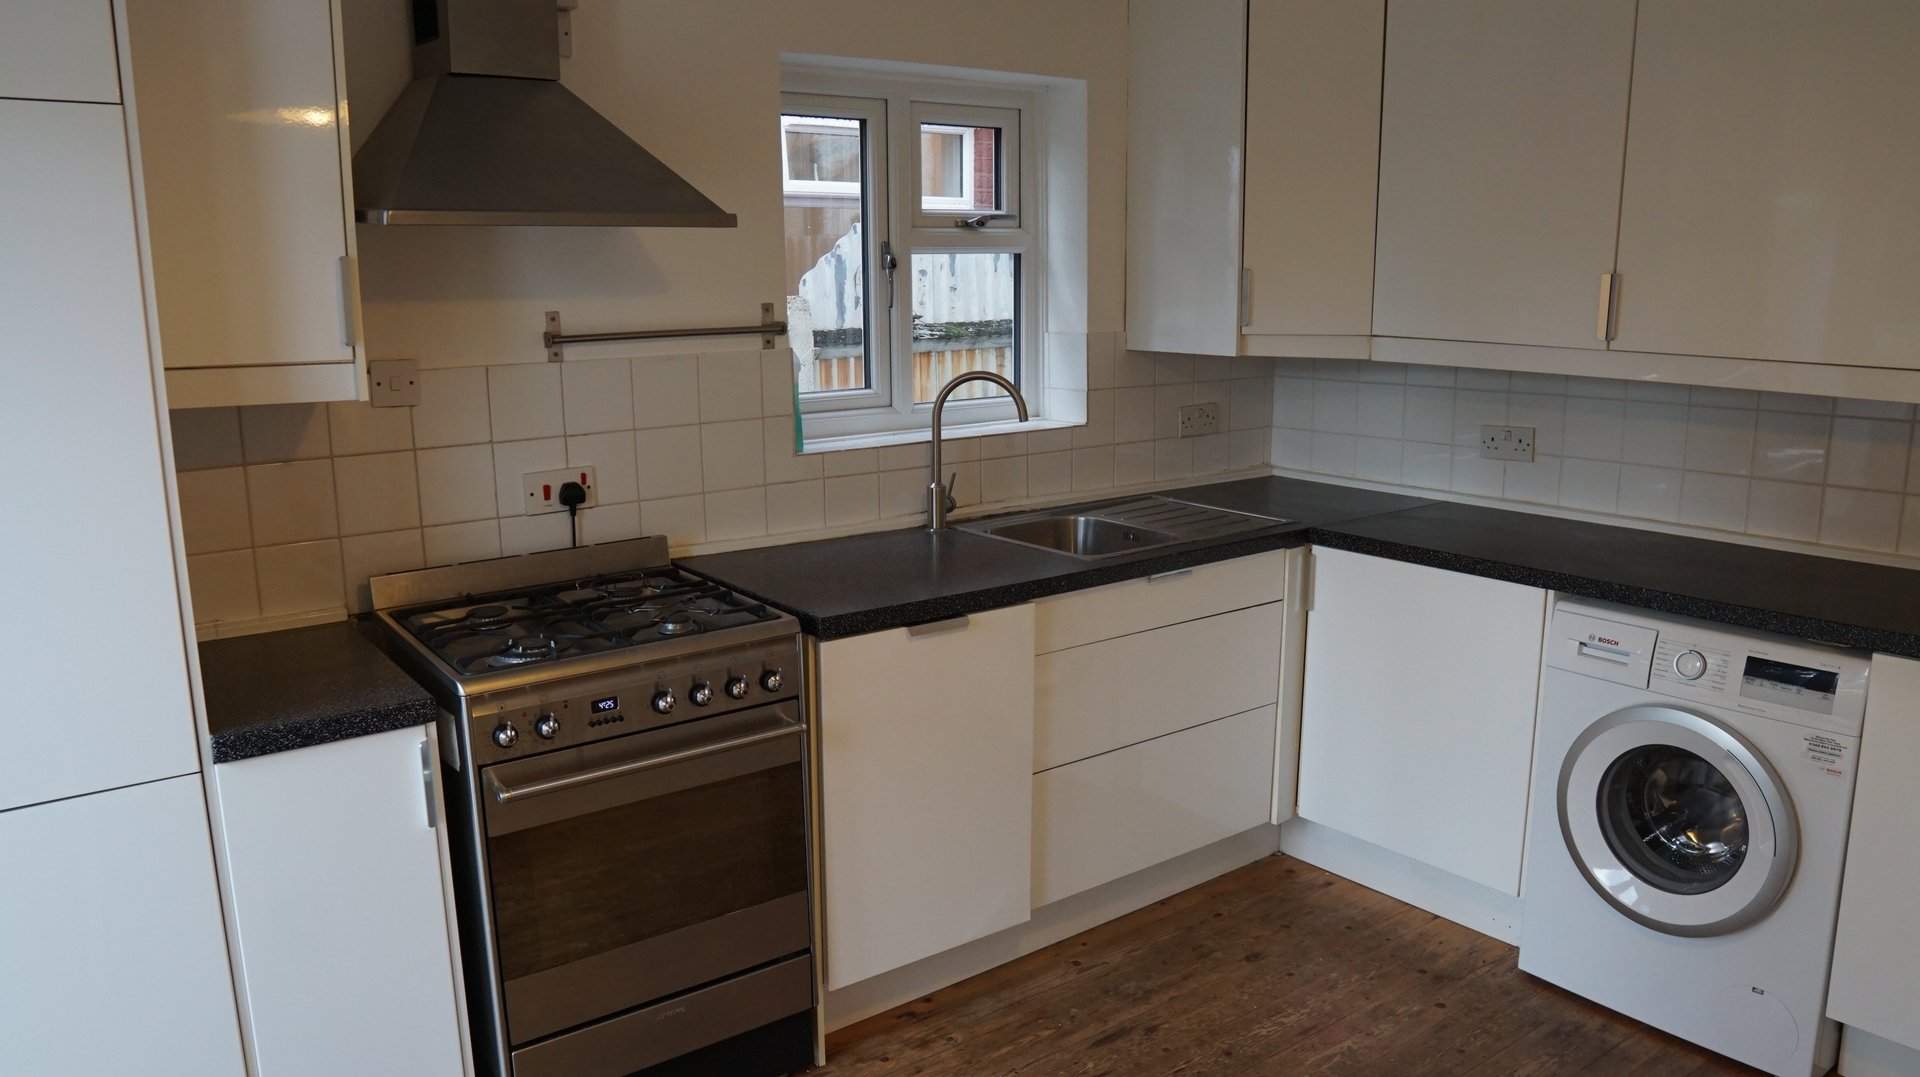 1 Bedroom Flat to rent in Wimbledon, London, SW19